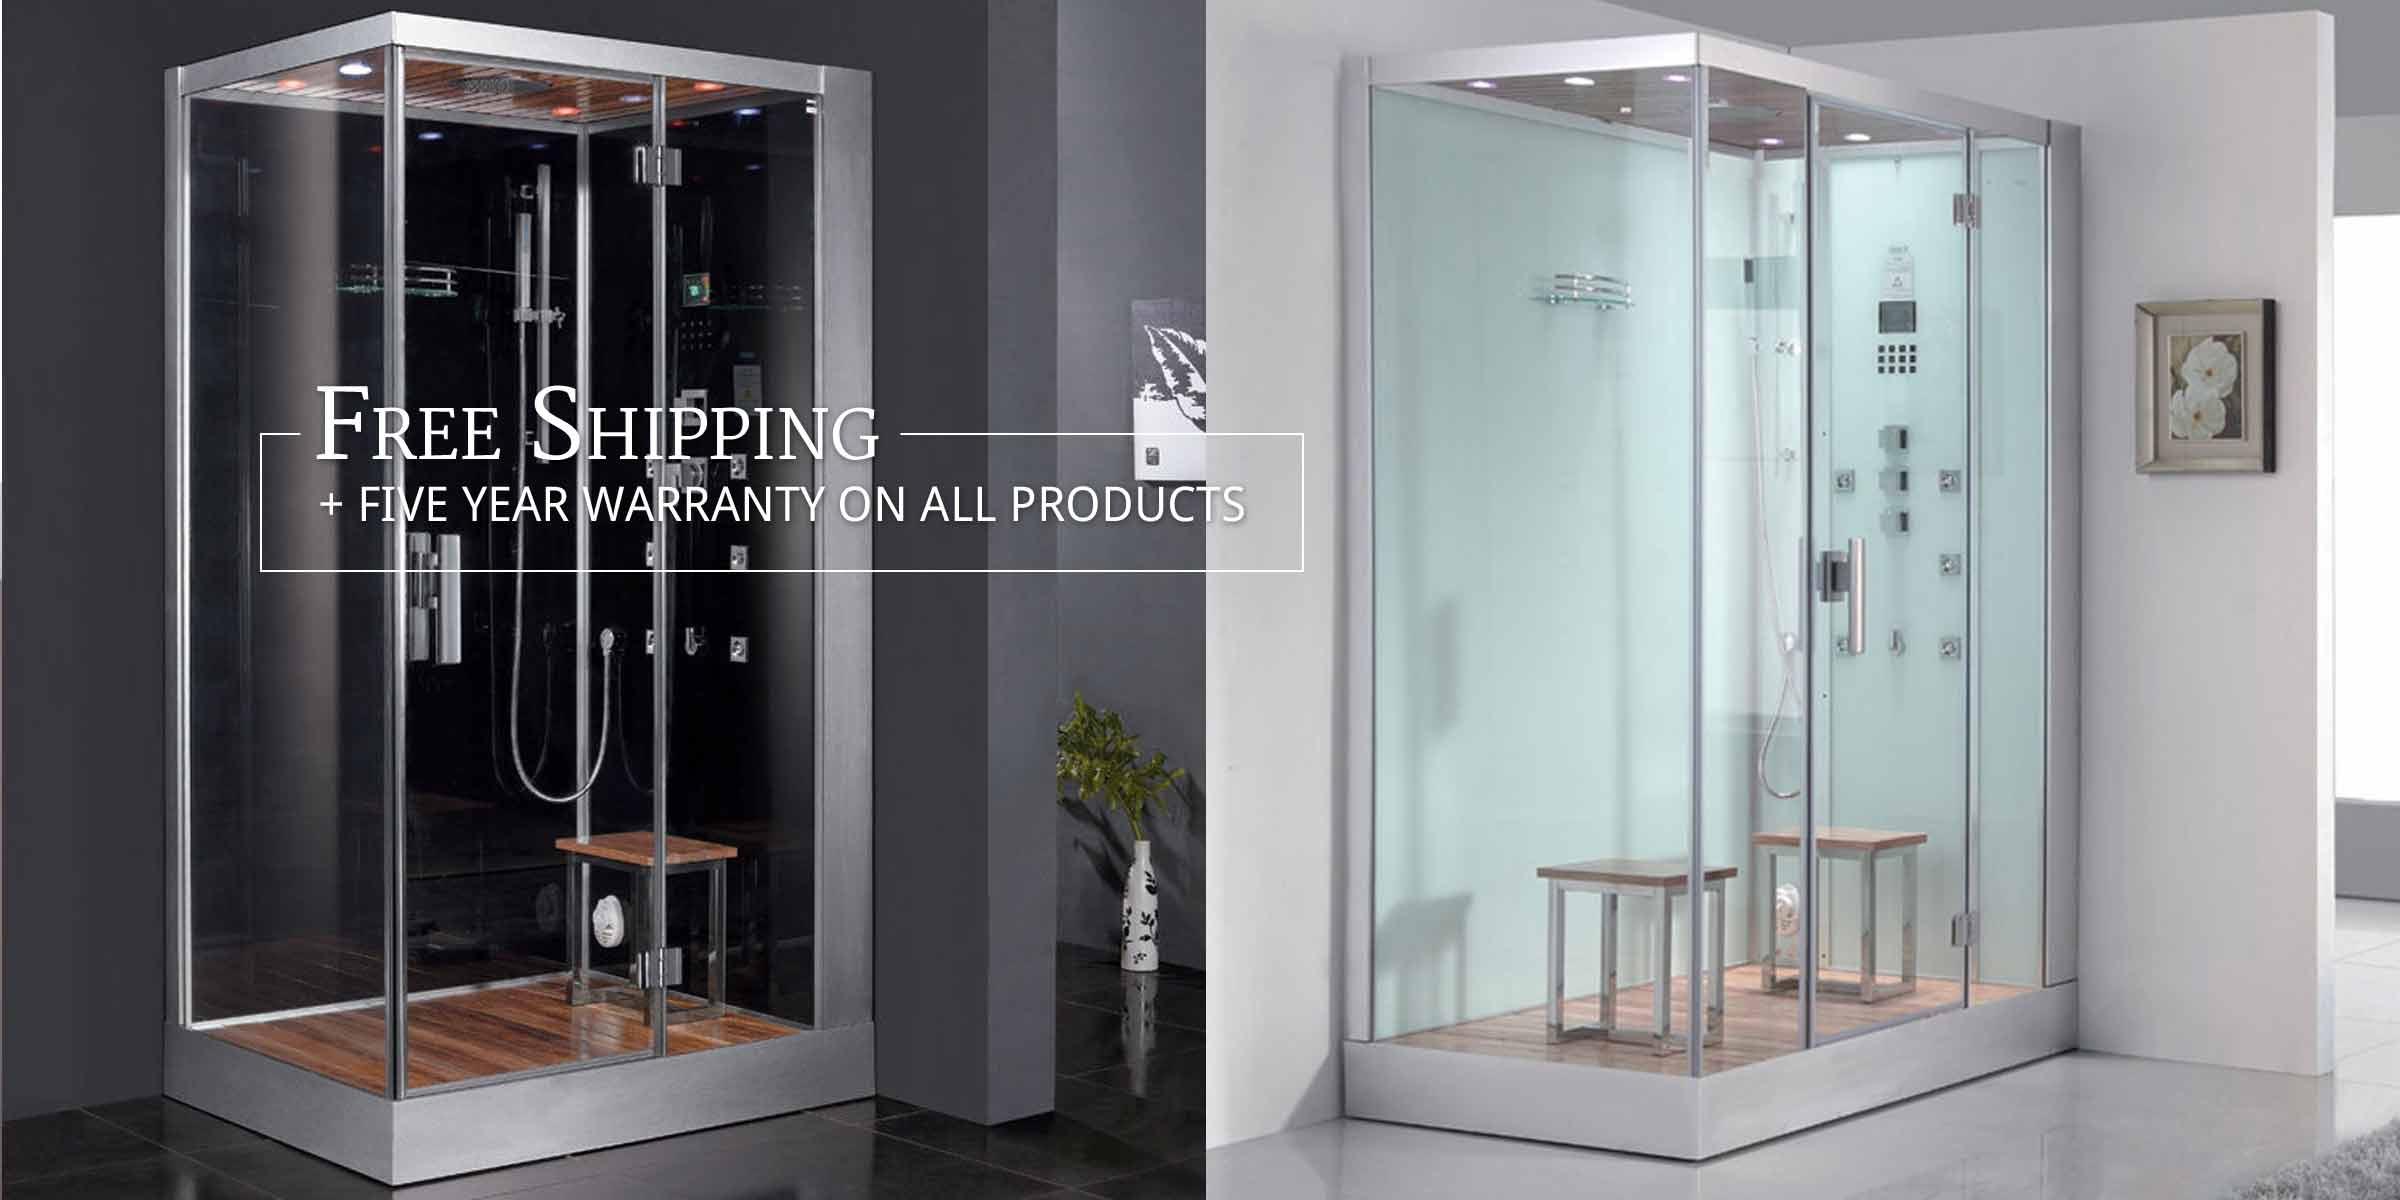 Photo: Steam Shower & Hyrdo Shower in 2 different bathrooms. Text: Free Shipping + Five Year Warranty